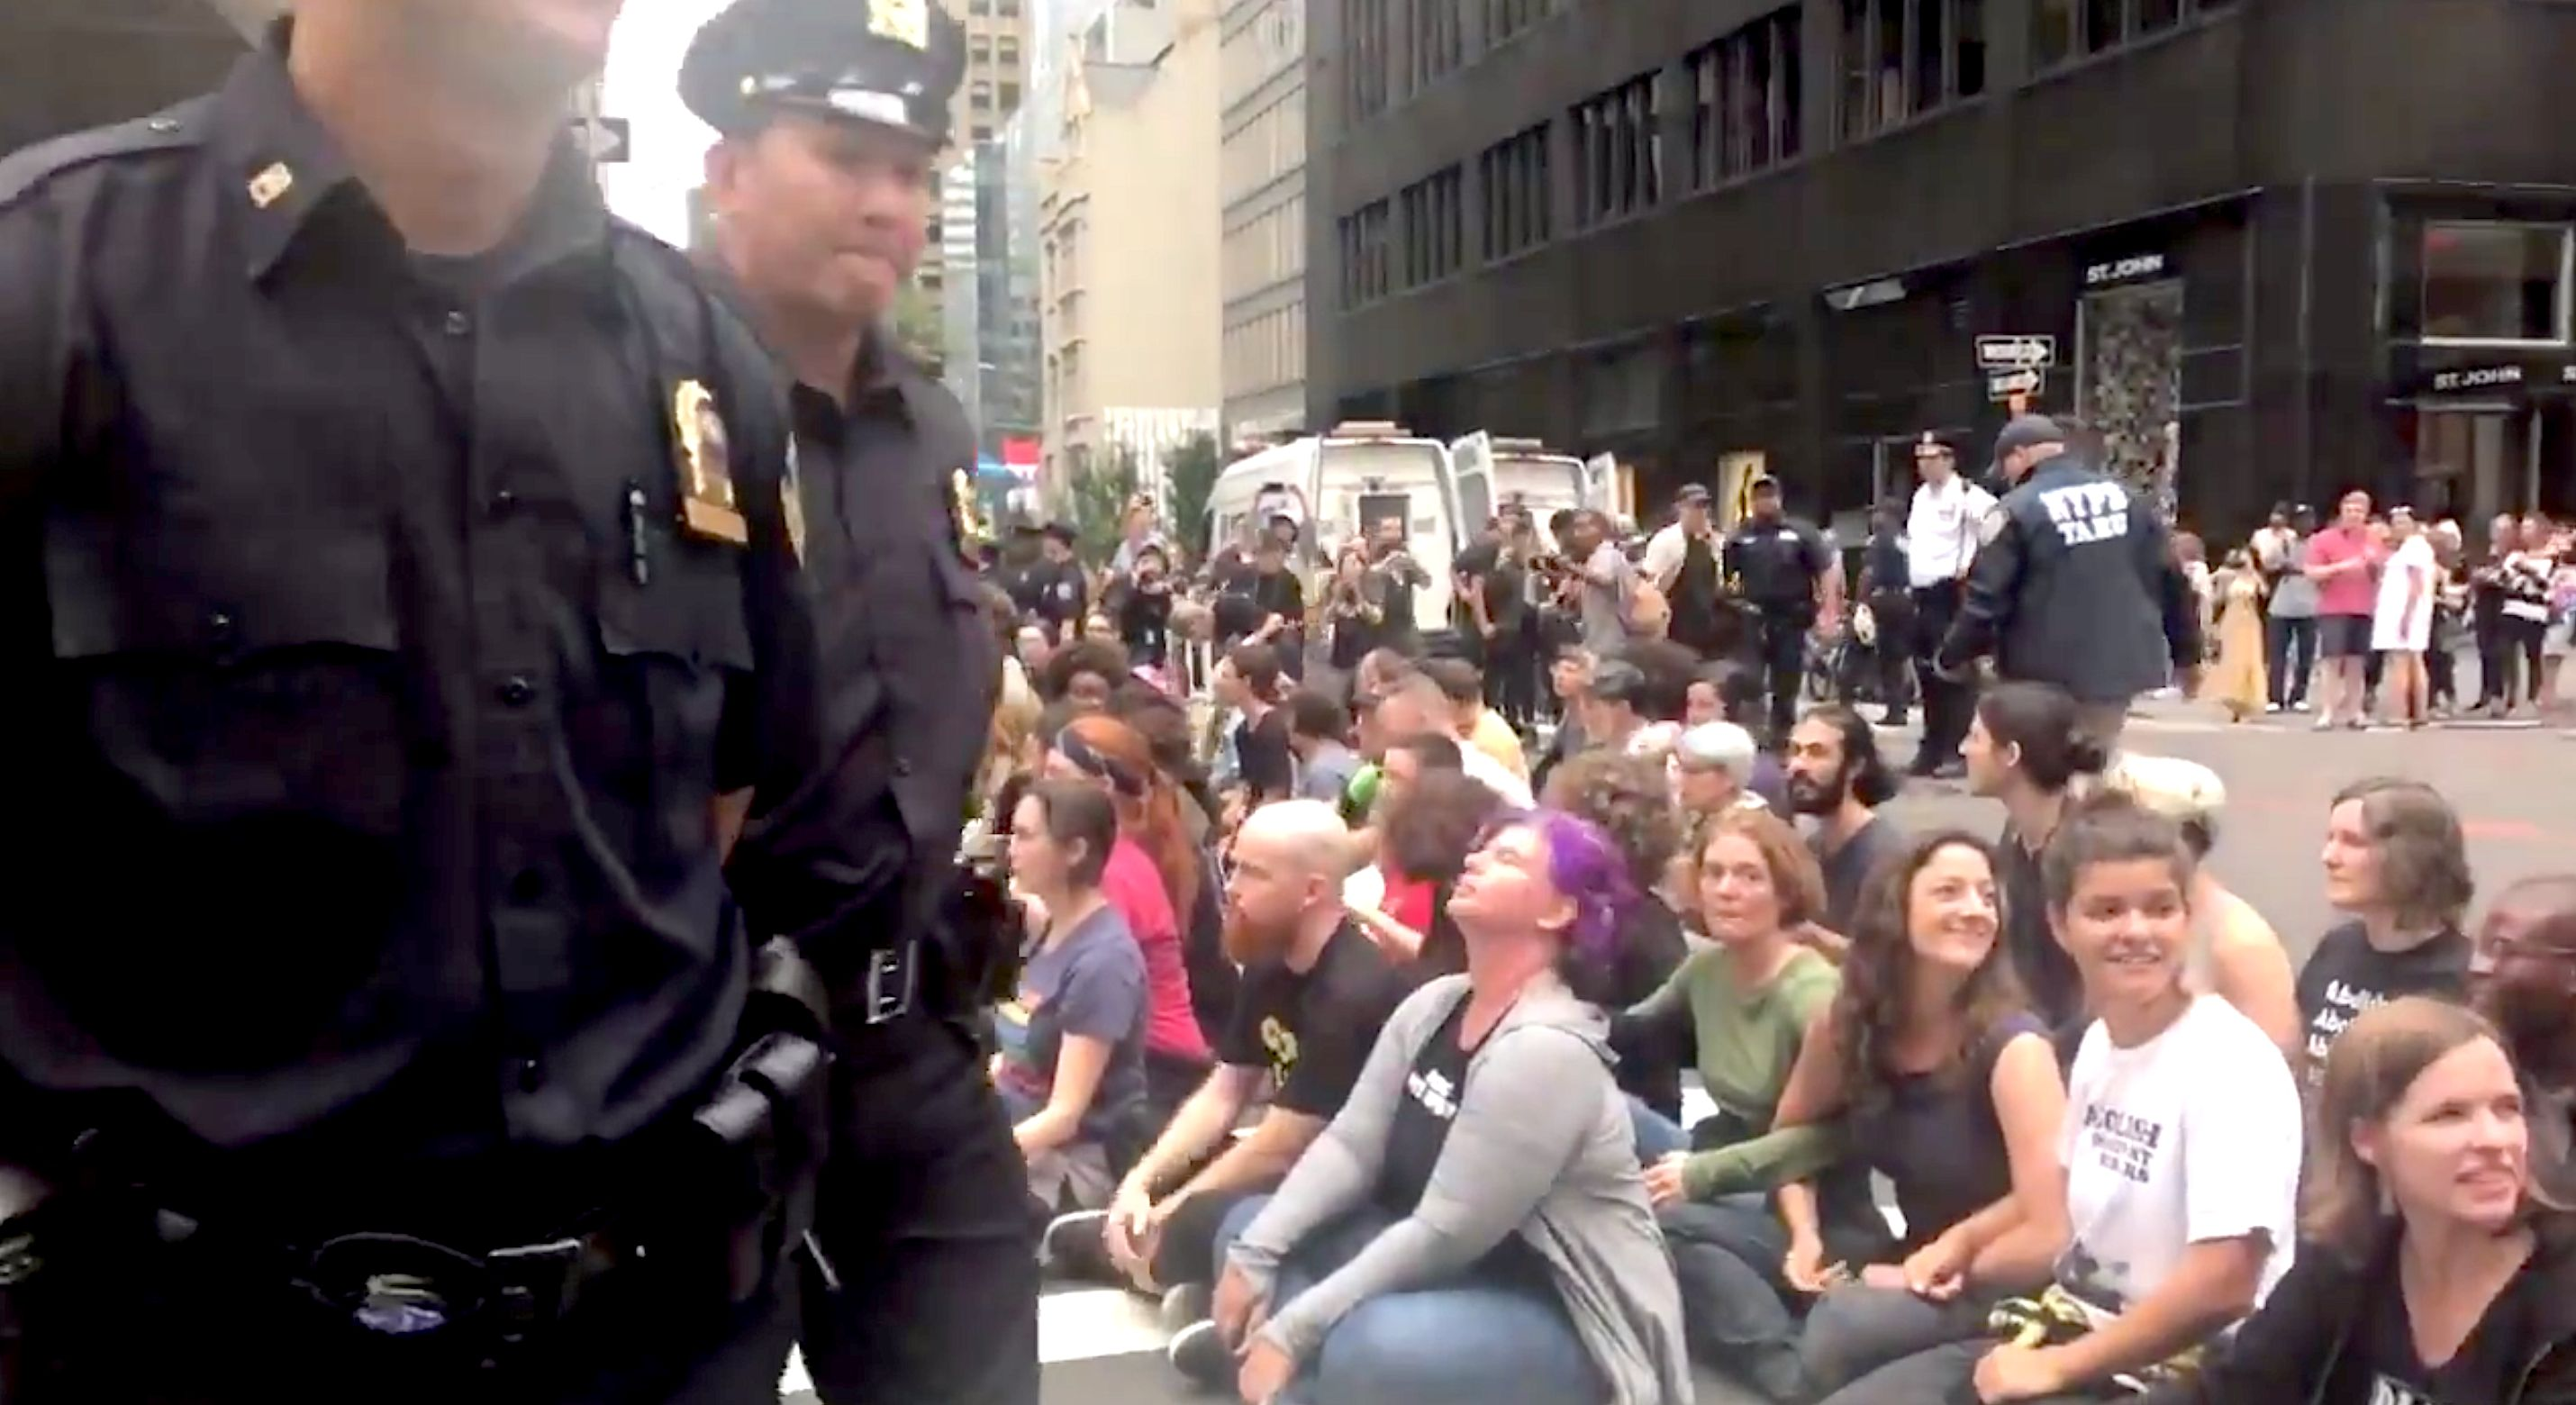 Dozens Of Anti-ICE Protesters Arrested During Sit-In At NYC Microsoft Store